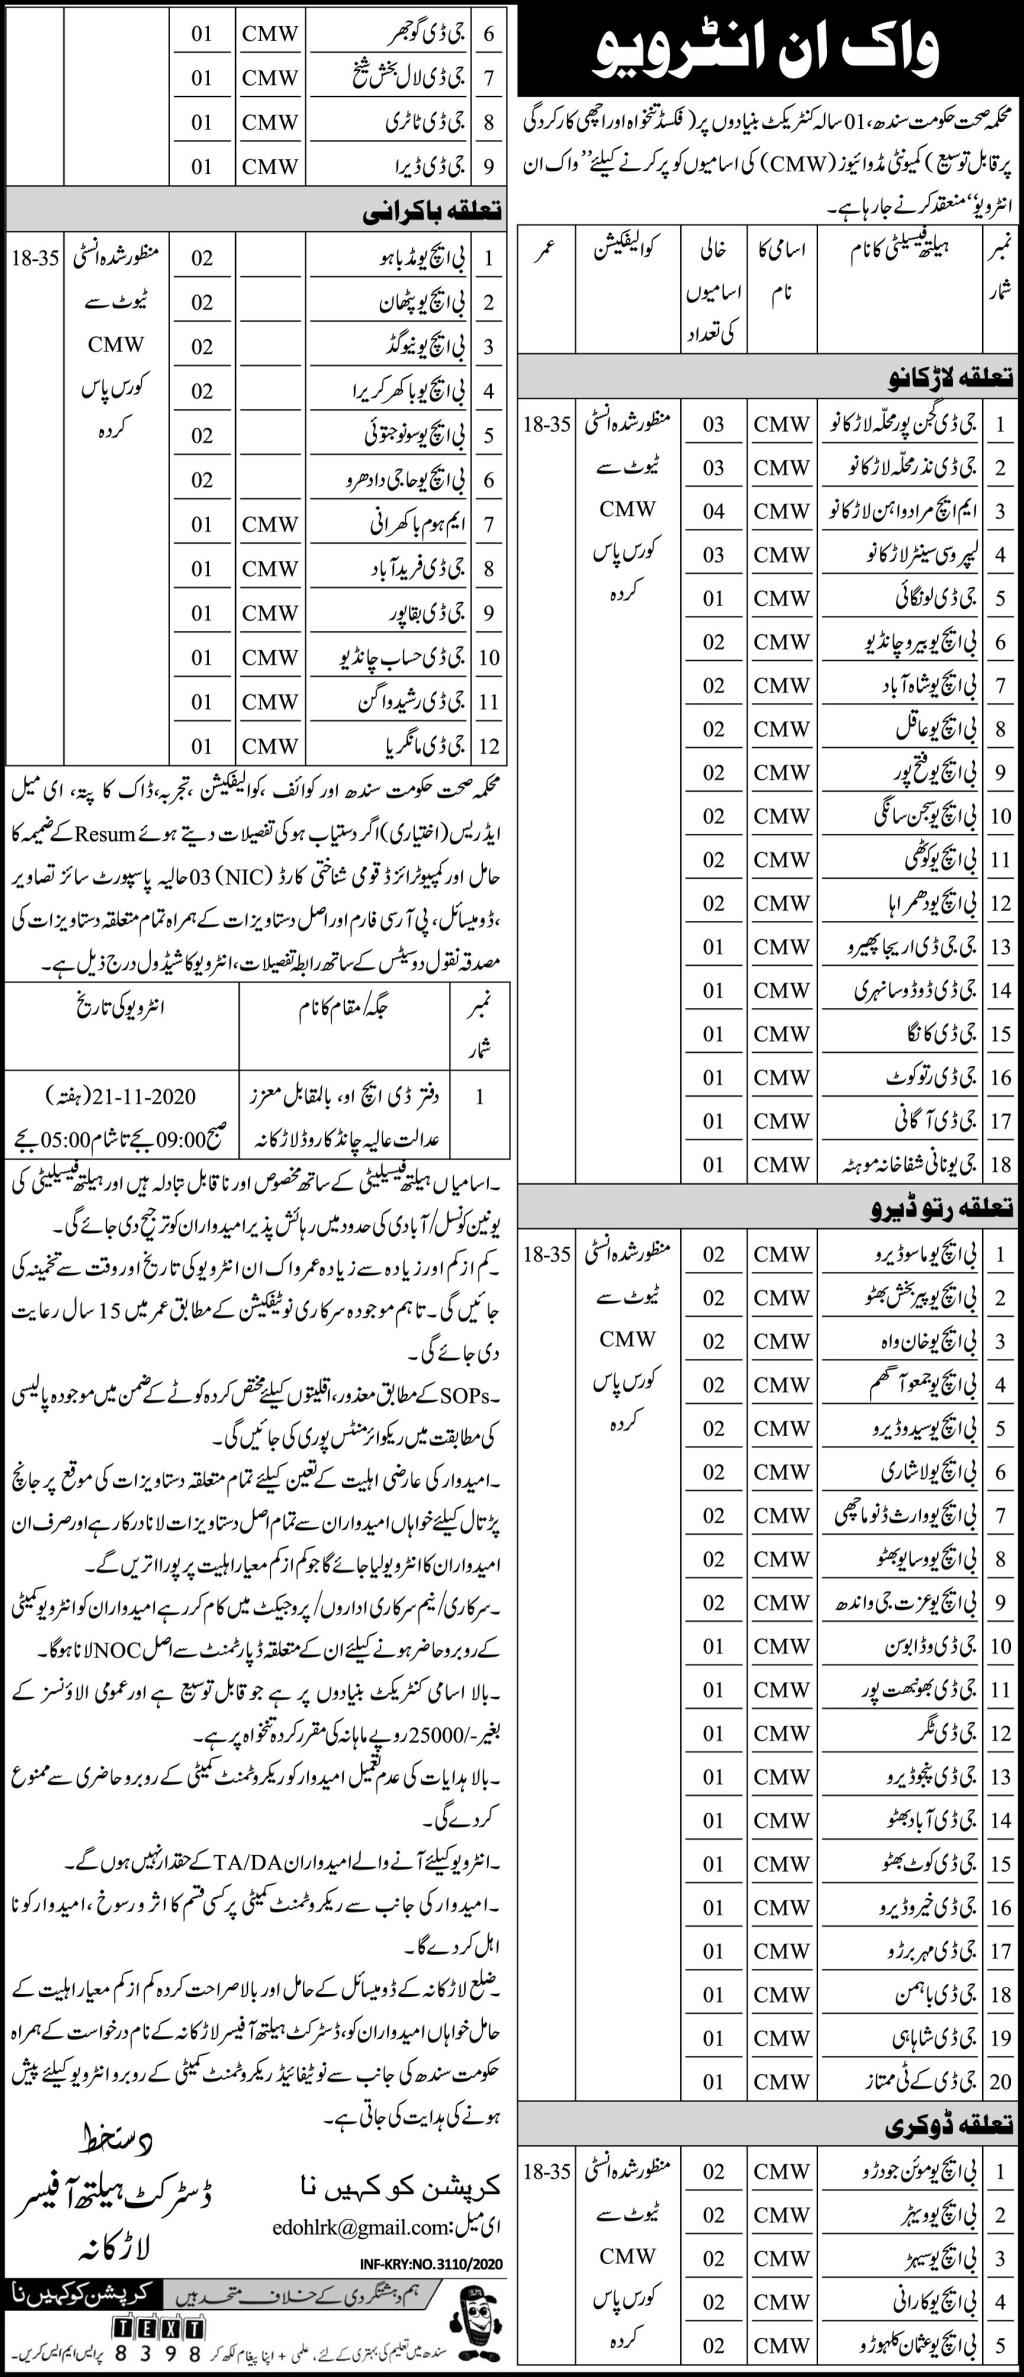 Health Department Jobs 2020 with Salary 25000/- For Community Midwife | 95 Seats Vacancies